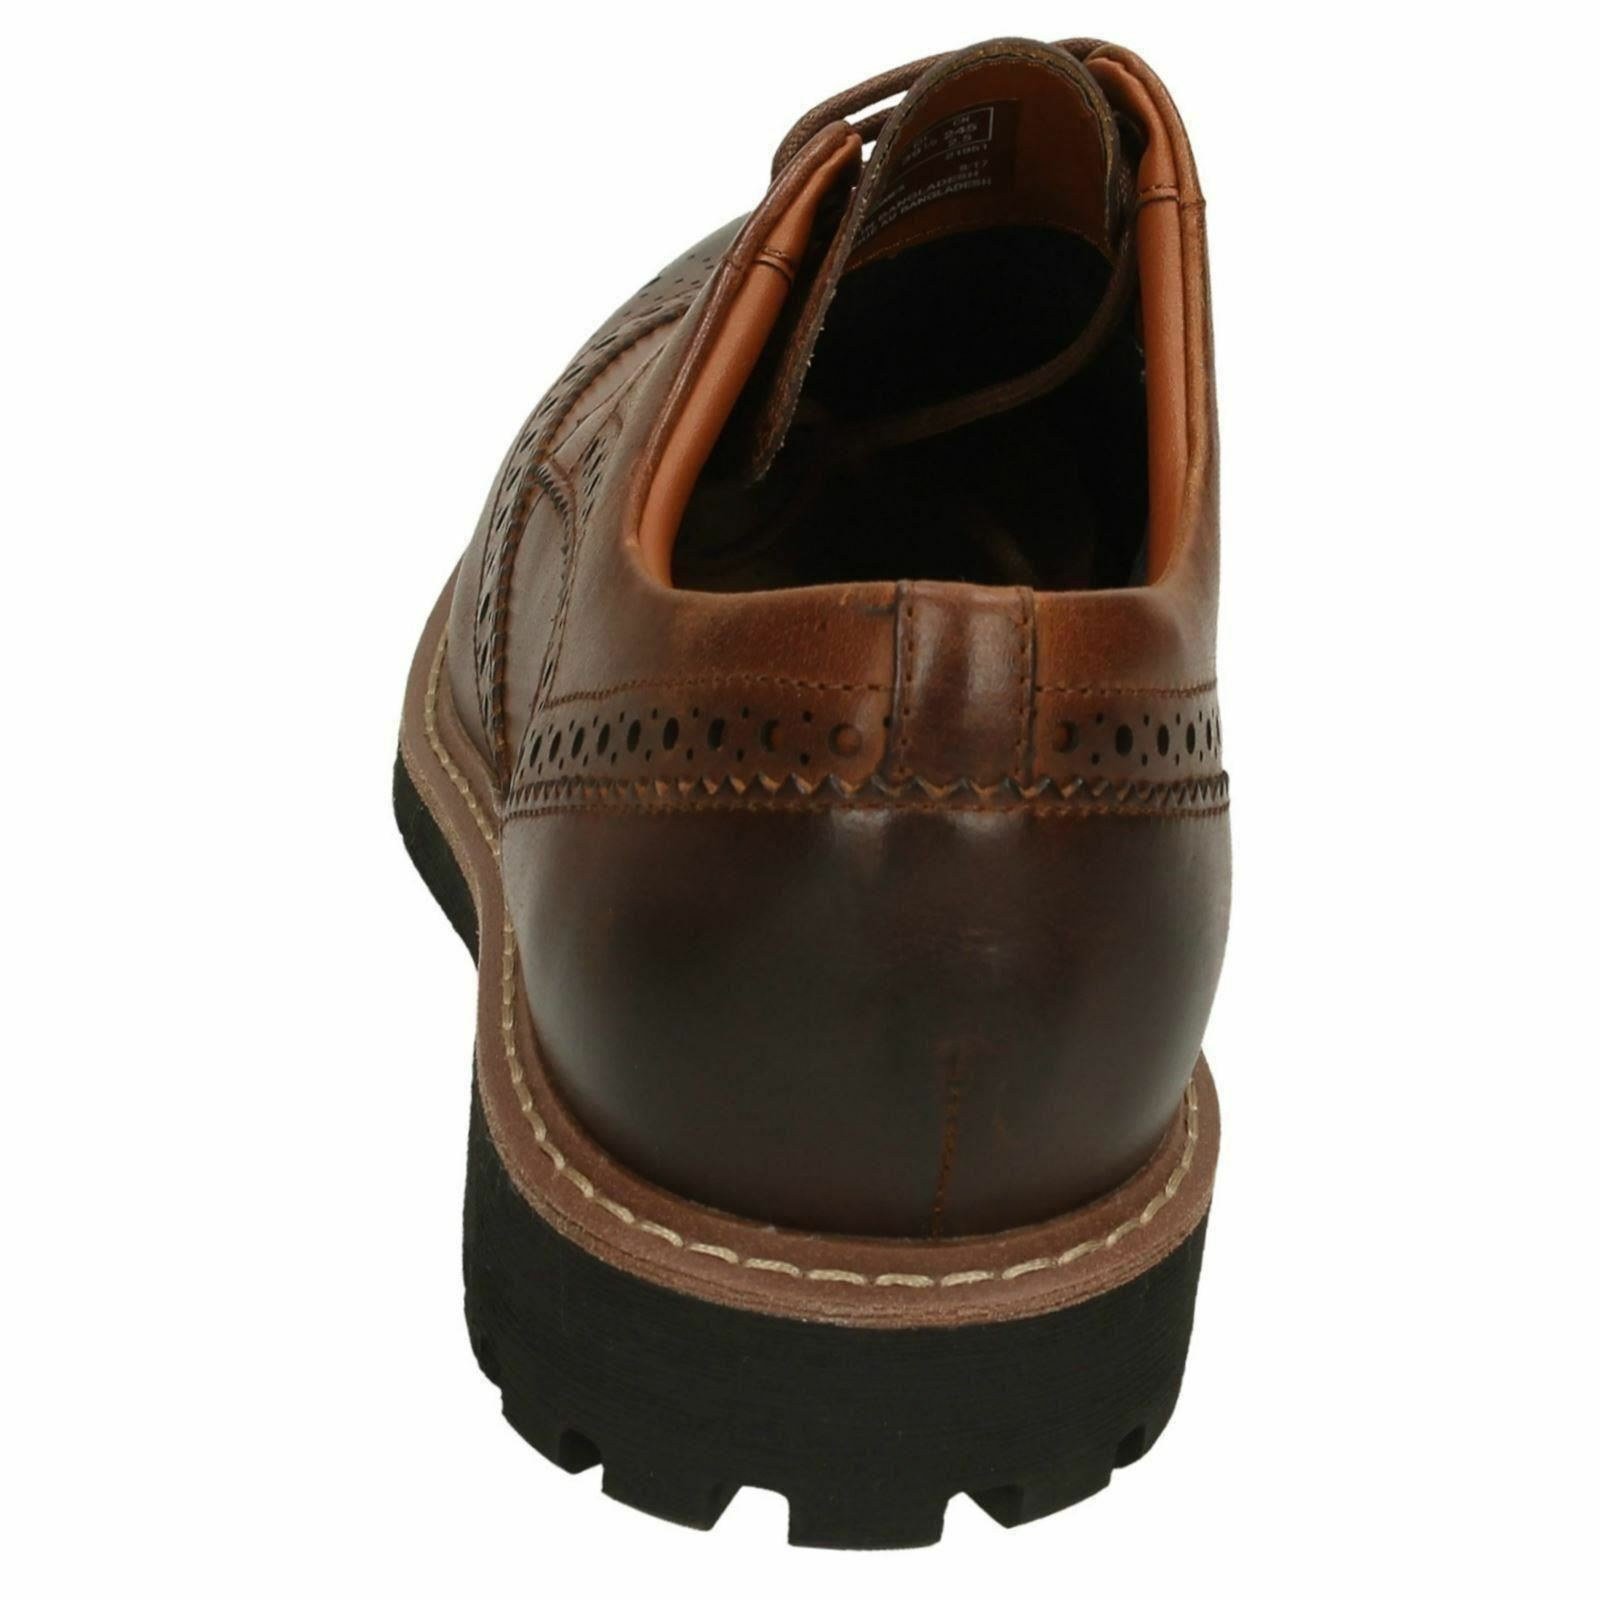 Herren Clarks Batcombe Casual Wing Leder Casual Batcombe Lace Up Brogue Schuhes 035475